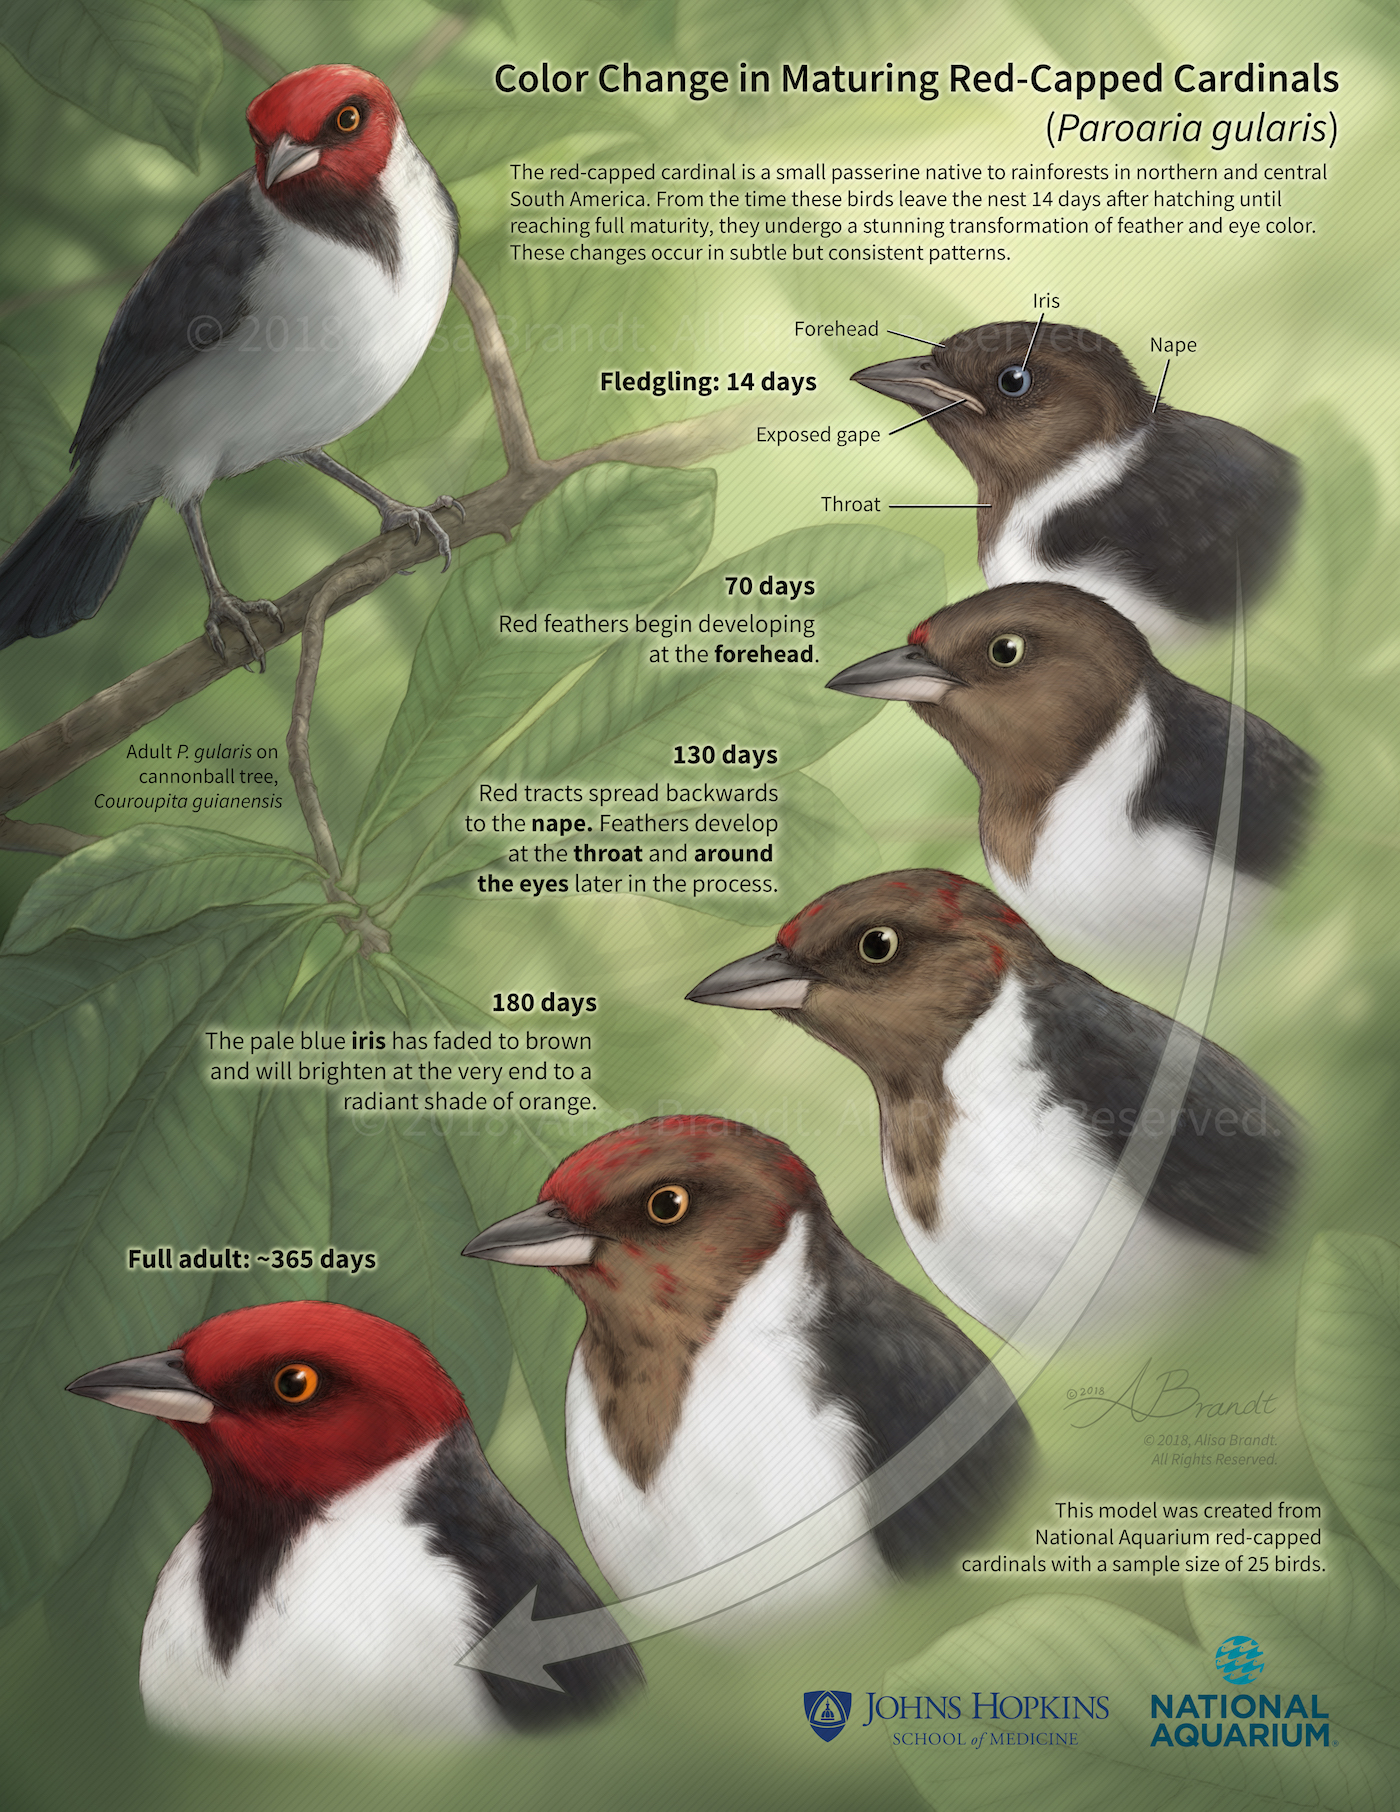 Red-capped cardinals poster